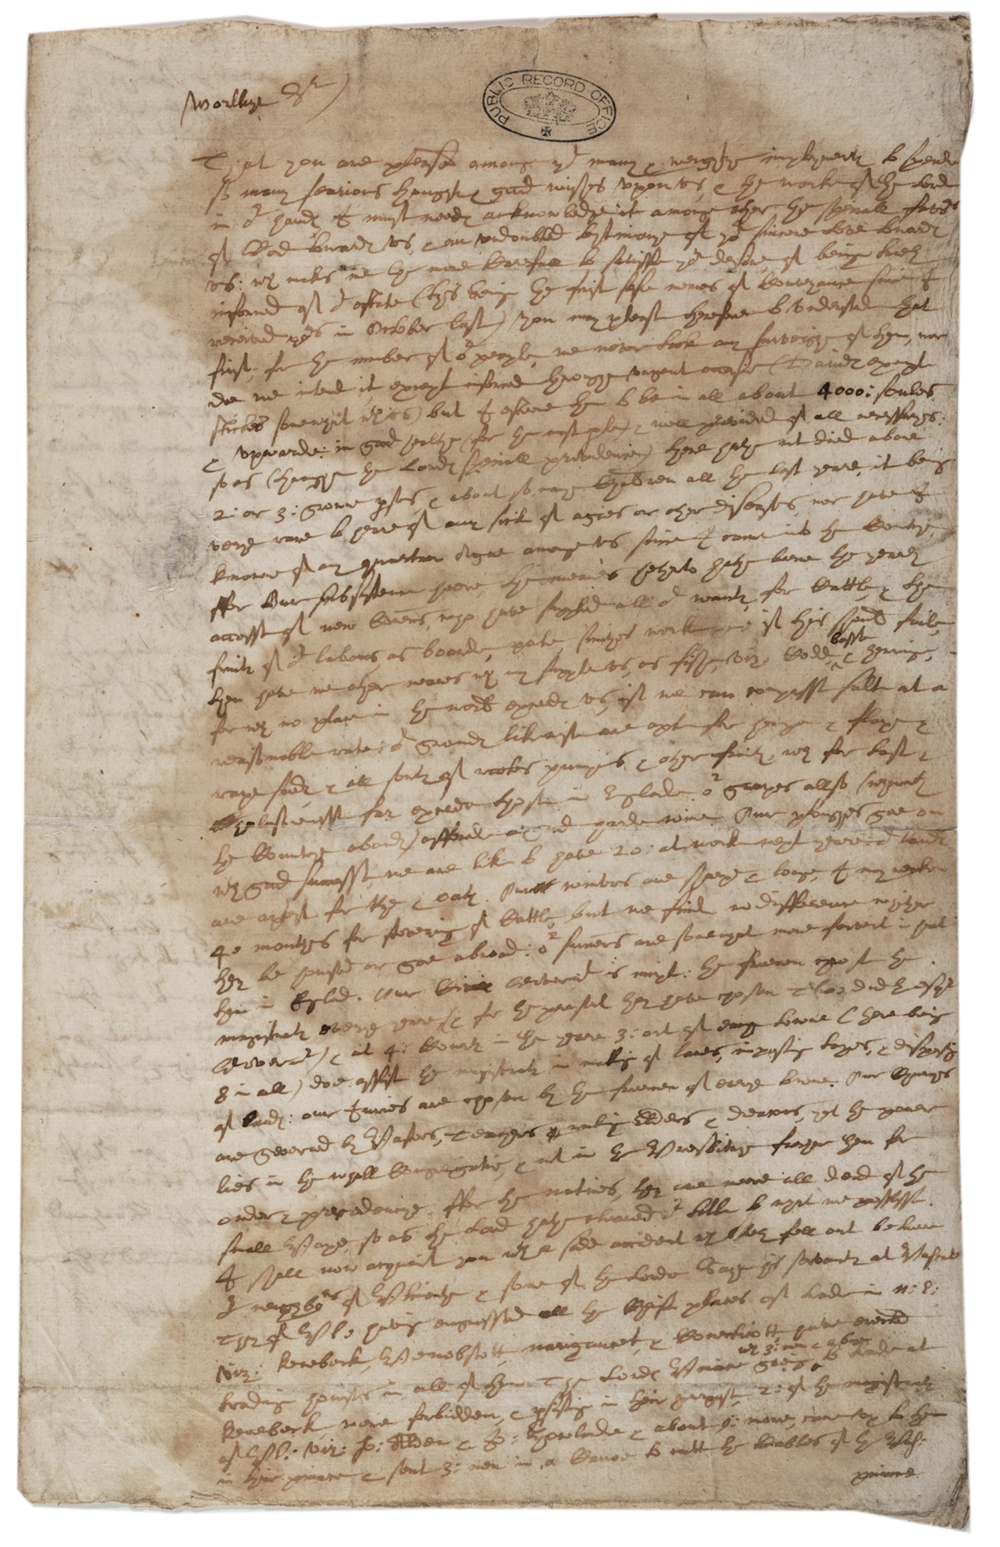 John Winthrop to Nathaniel Rich, May 22, 1634. (Gilder Lehrman Collection)